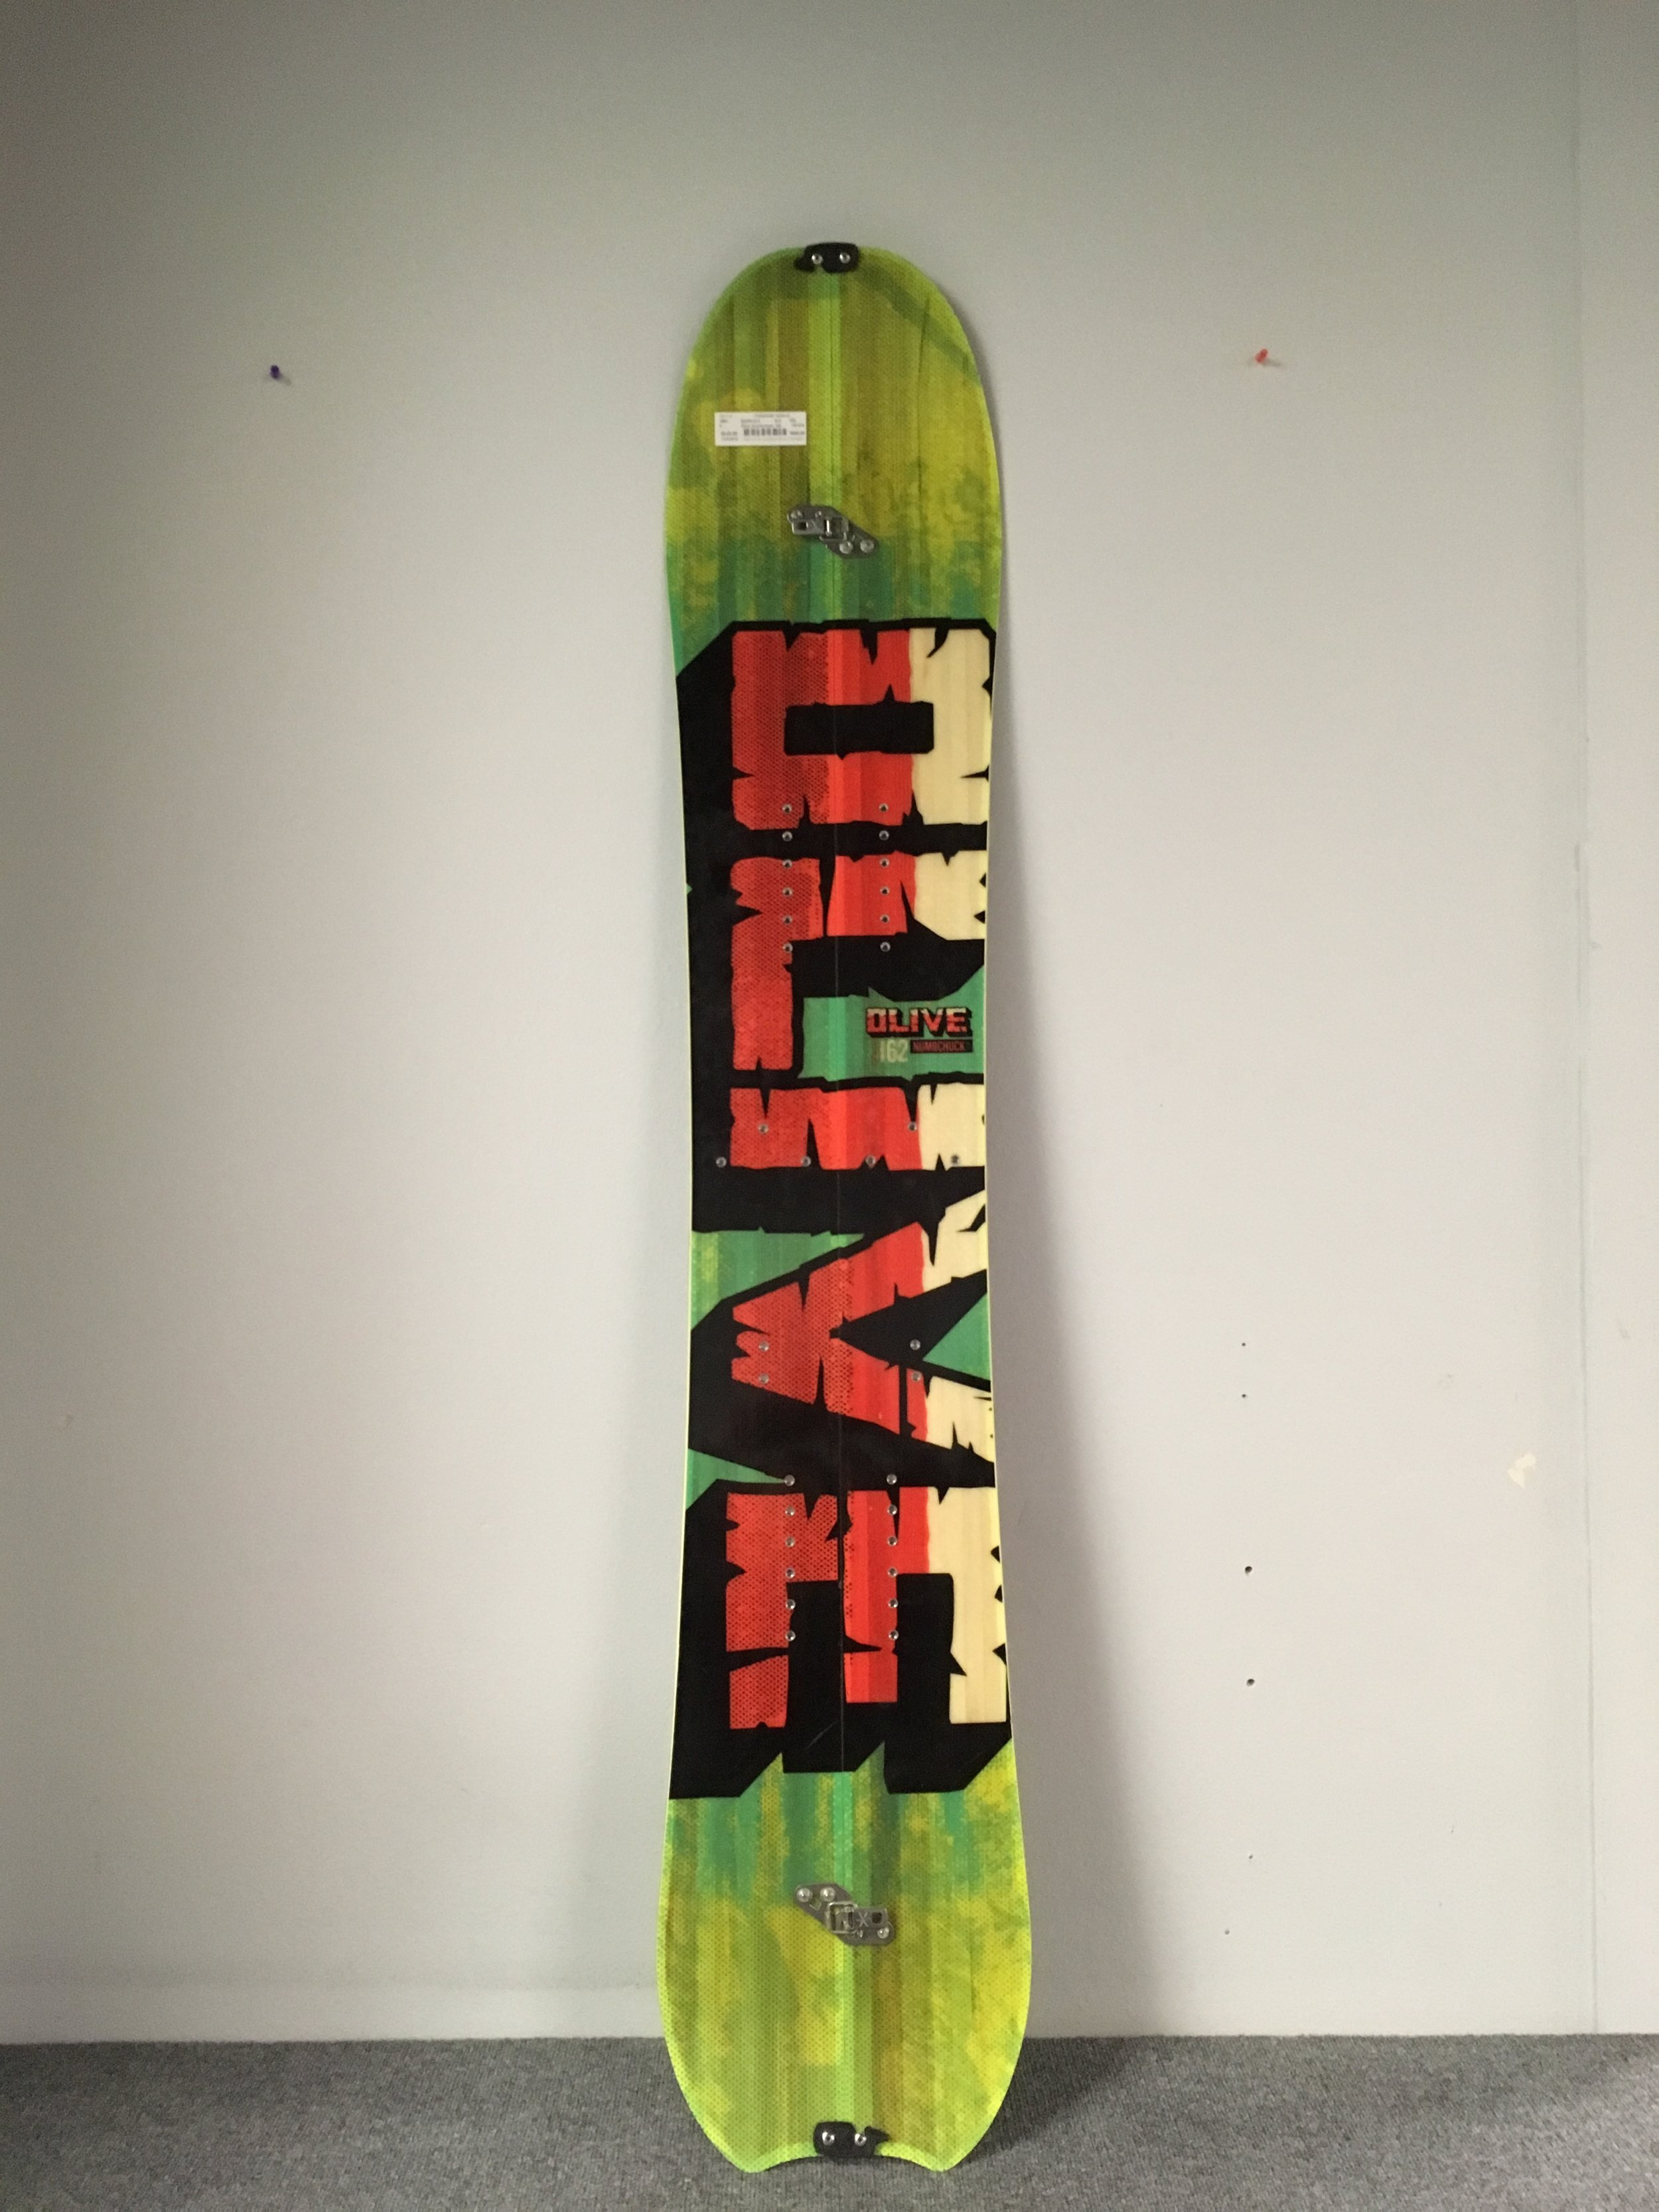 """The 162 Olive Numbchuck is definitely one of the coolest split's we've seen come in all winter. The dudes from North of the border have this to stay about the board, """"A small board with a big punch. the numb chuck is a directional split powder board with kungfu kicks. poplar core, reinforced with ash and triaxial composites to provide a stiffer feel. all mountain shape with rocker for a fluid powder ride. locked tight with karakoram tip + board clips. hiya!go climb a mountain, save your money for beer."""" I think they're spot on! Retail on this bad boy is listed at $985 but we can get you out there for $549!"""